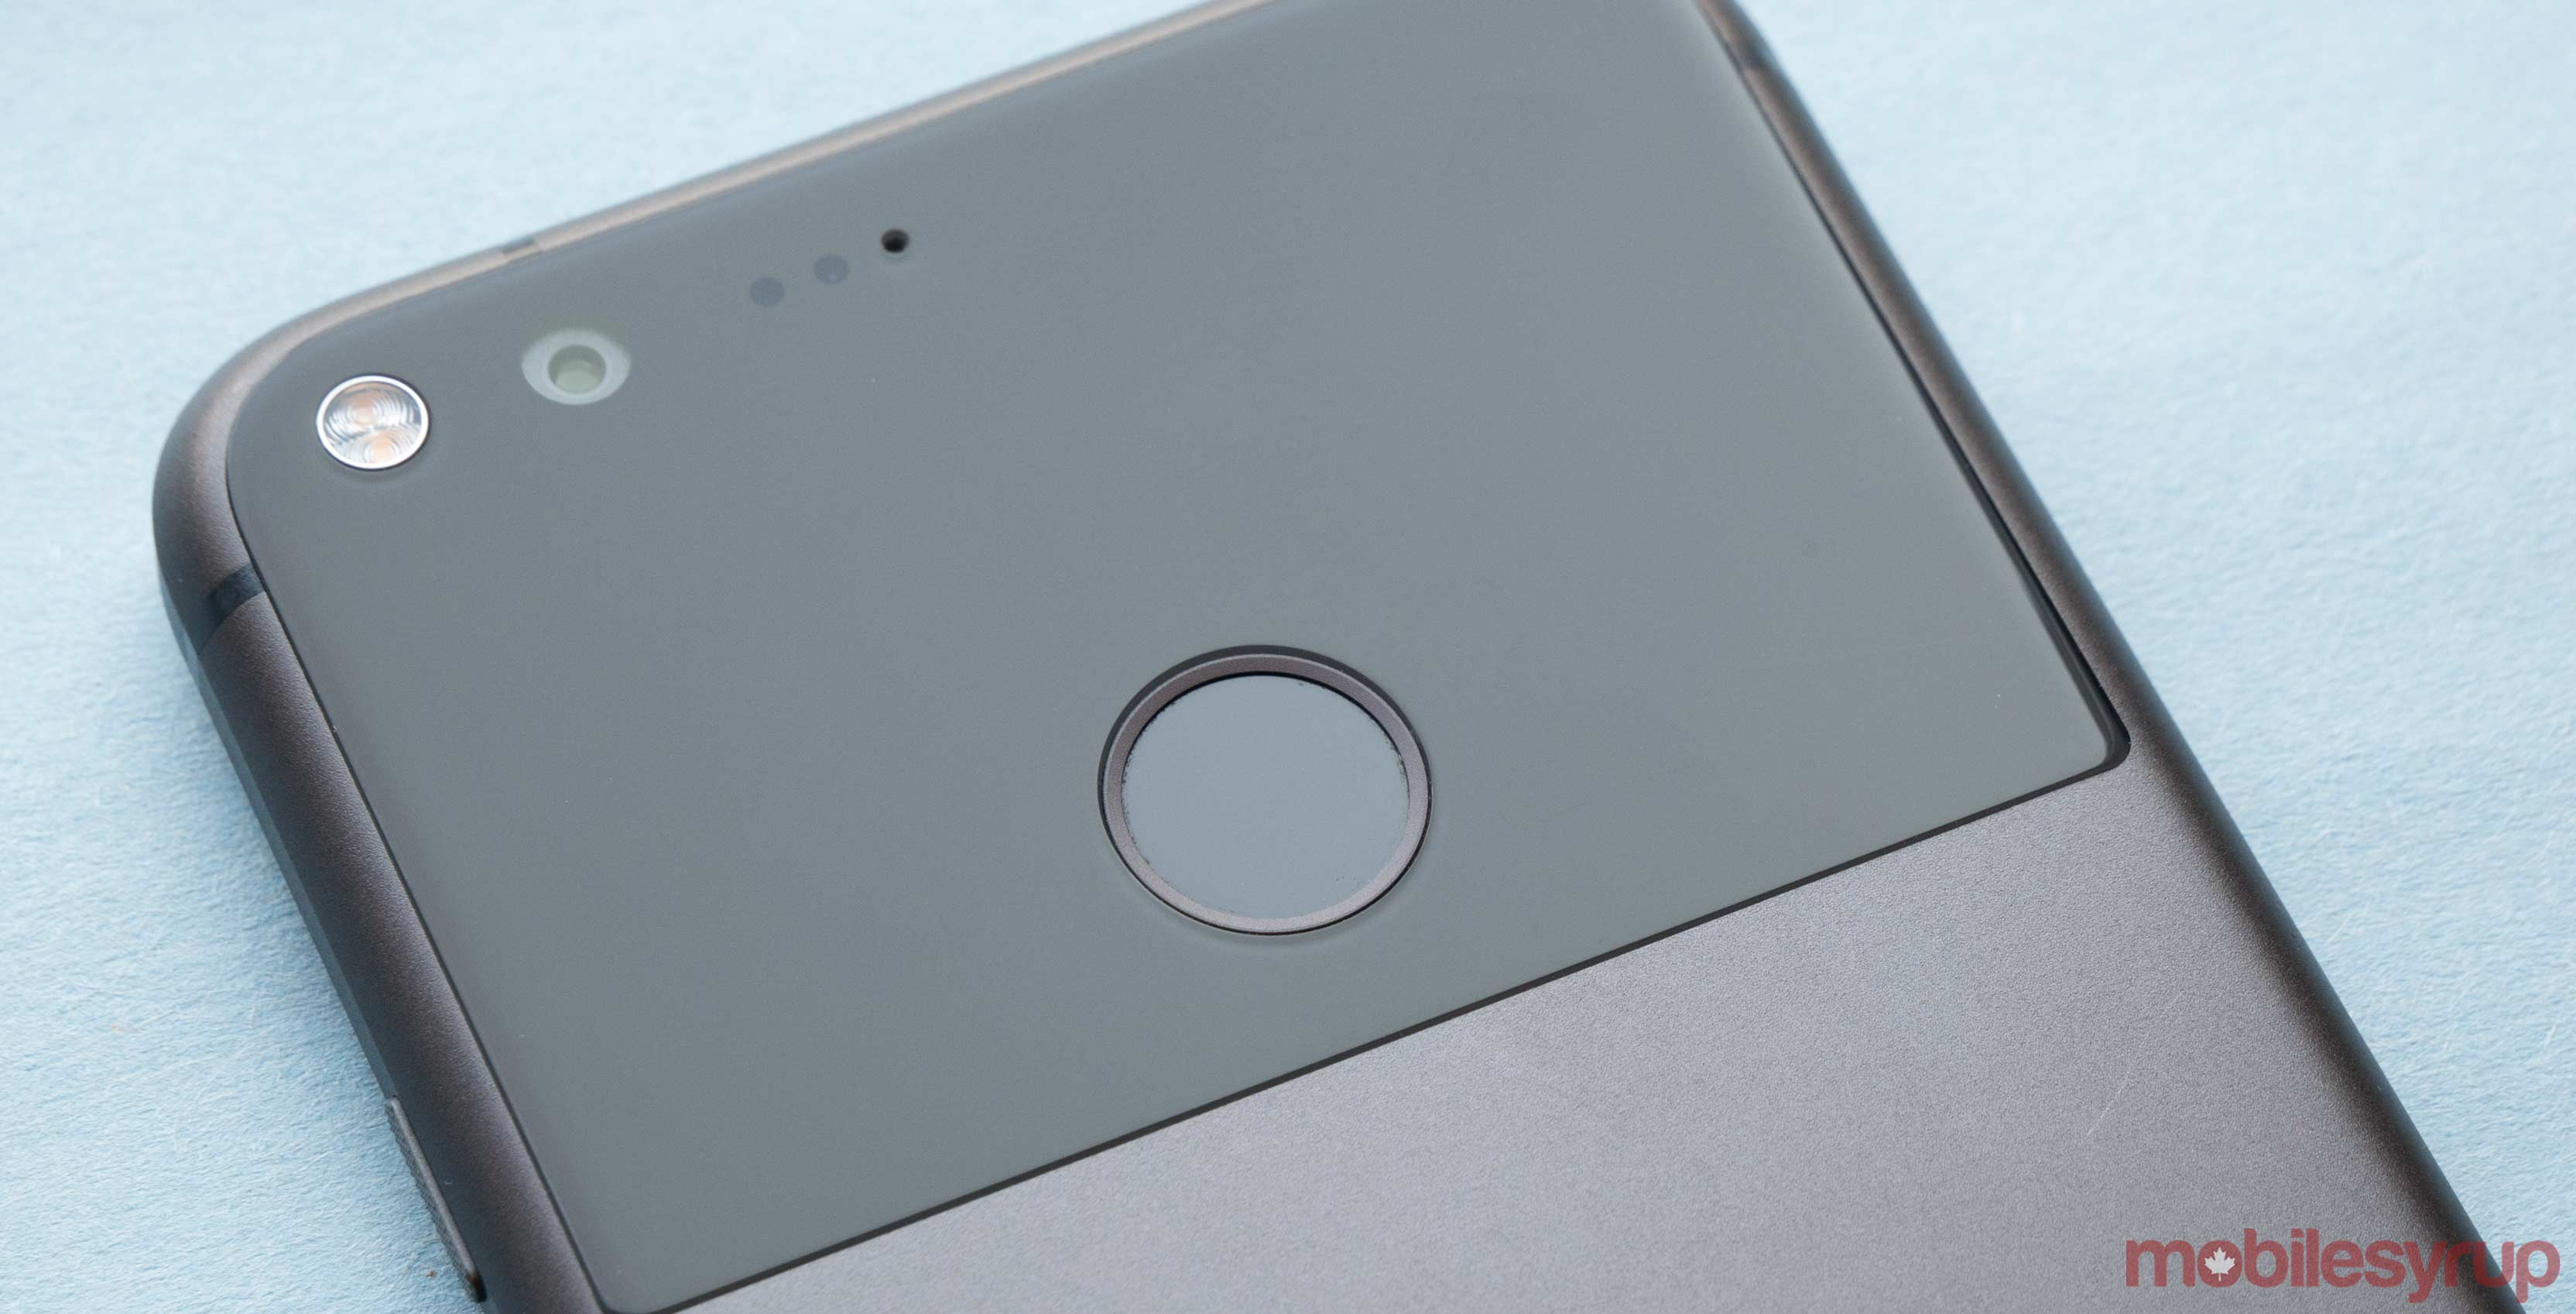 Google Pixel phones are still experiencing Bluetooth pairing issues